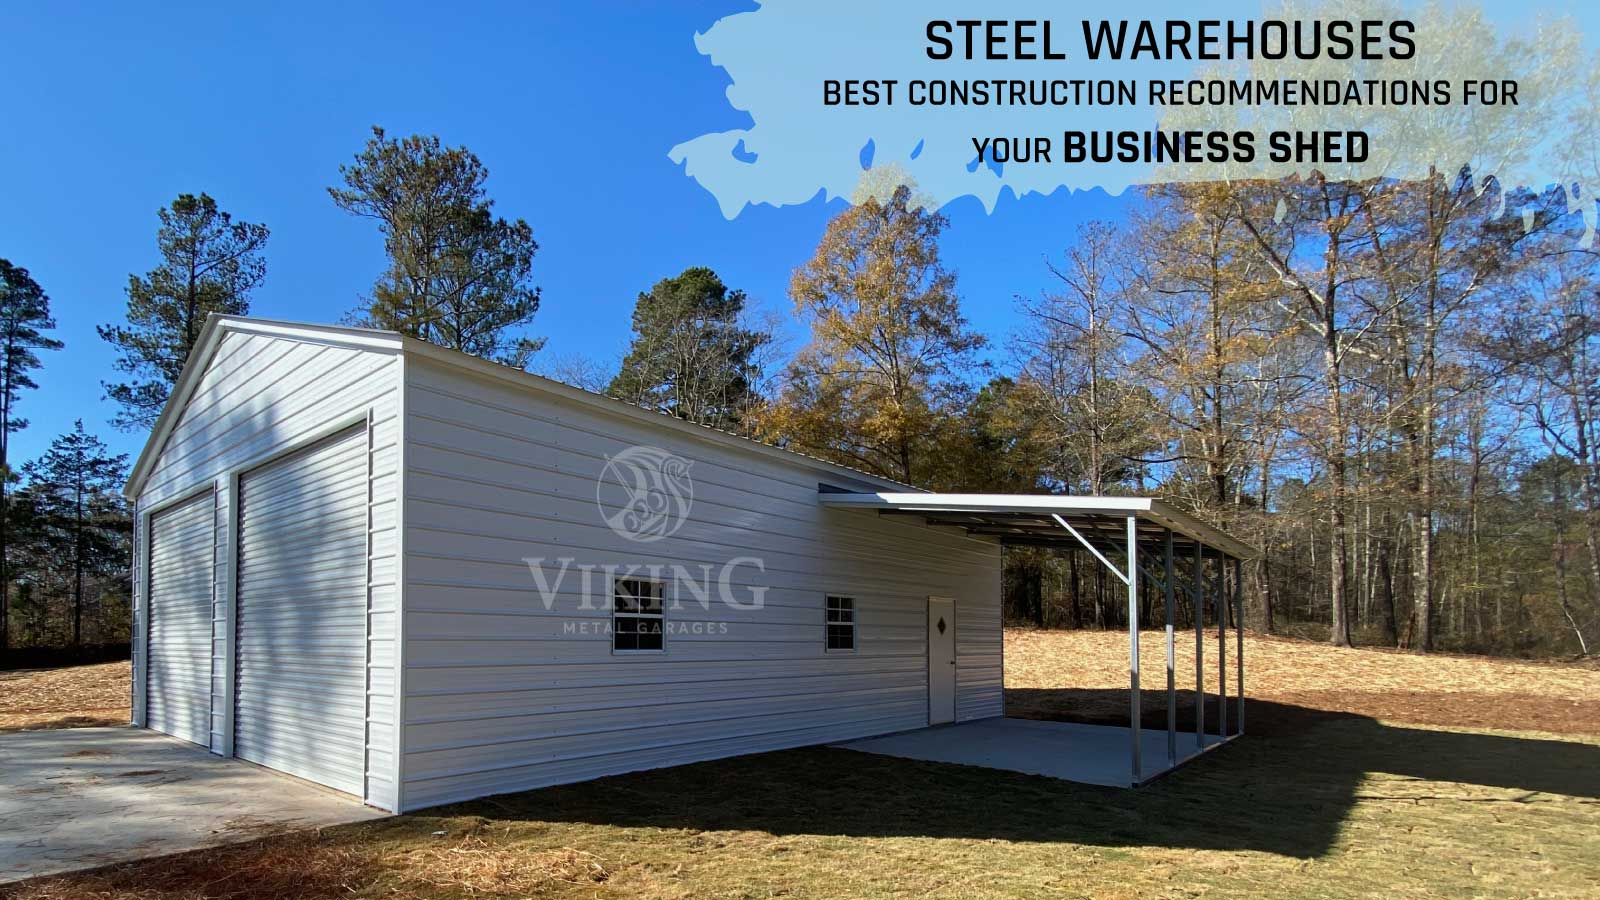 Steel Warehouses: Best Construction Recommendations for Your Business Shed